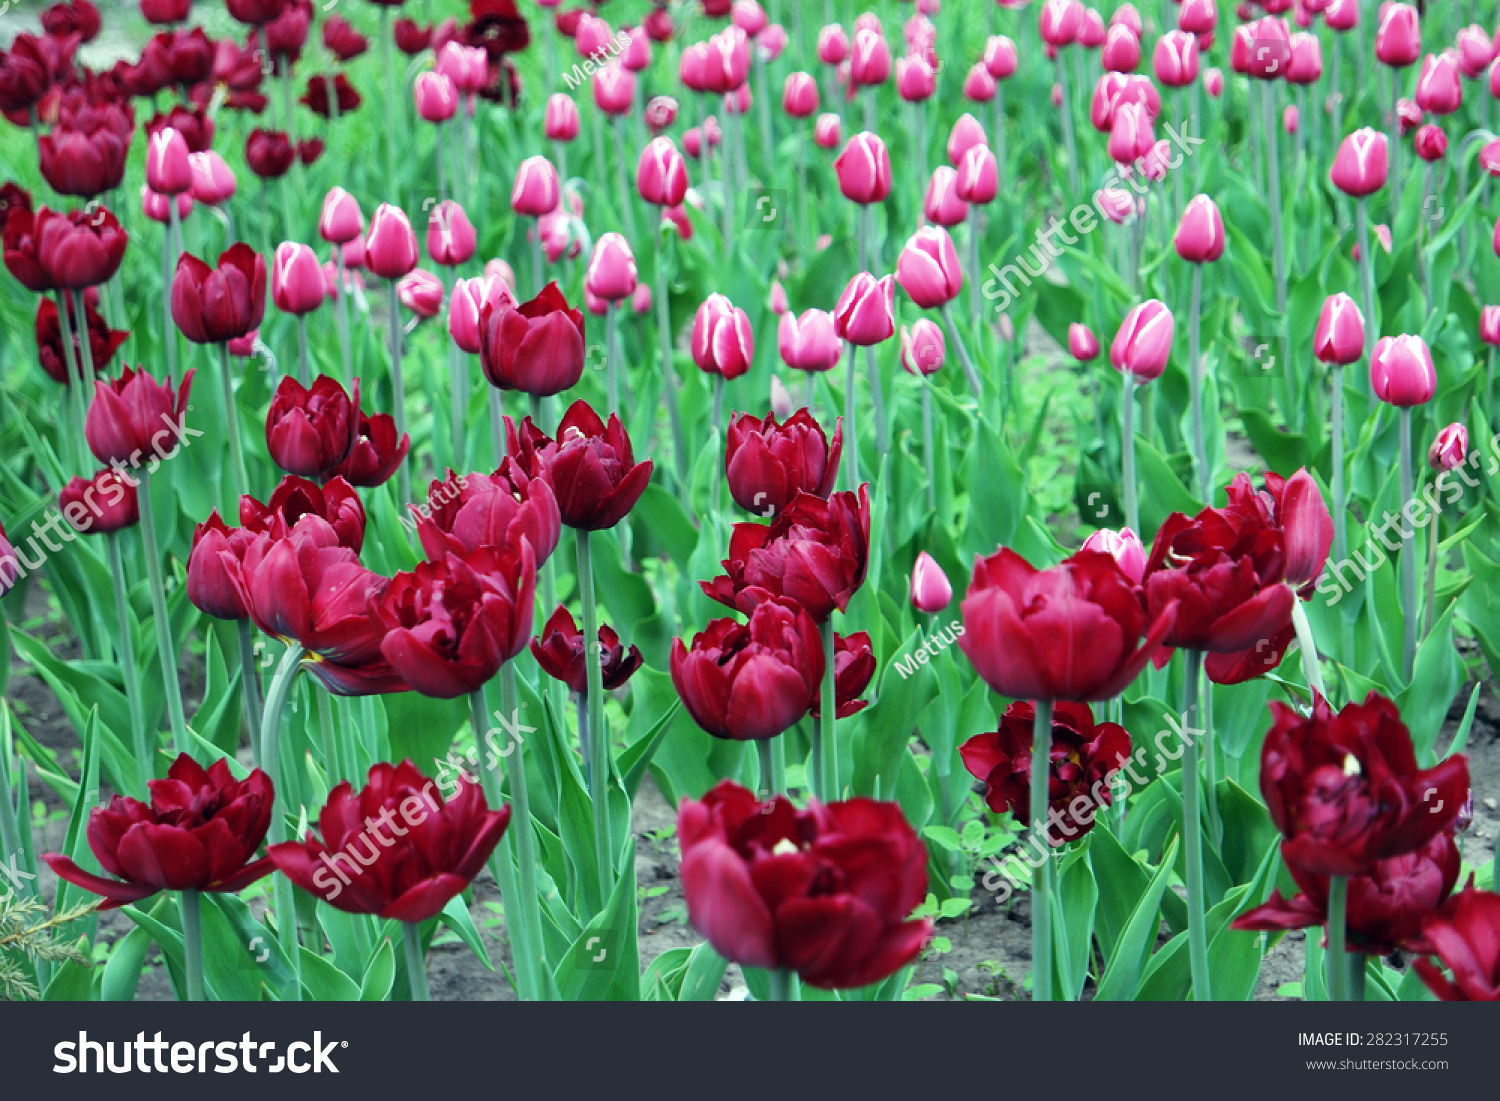 stock-photo-tulips-field-of-two-color-fl